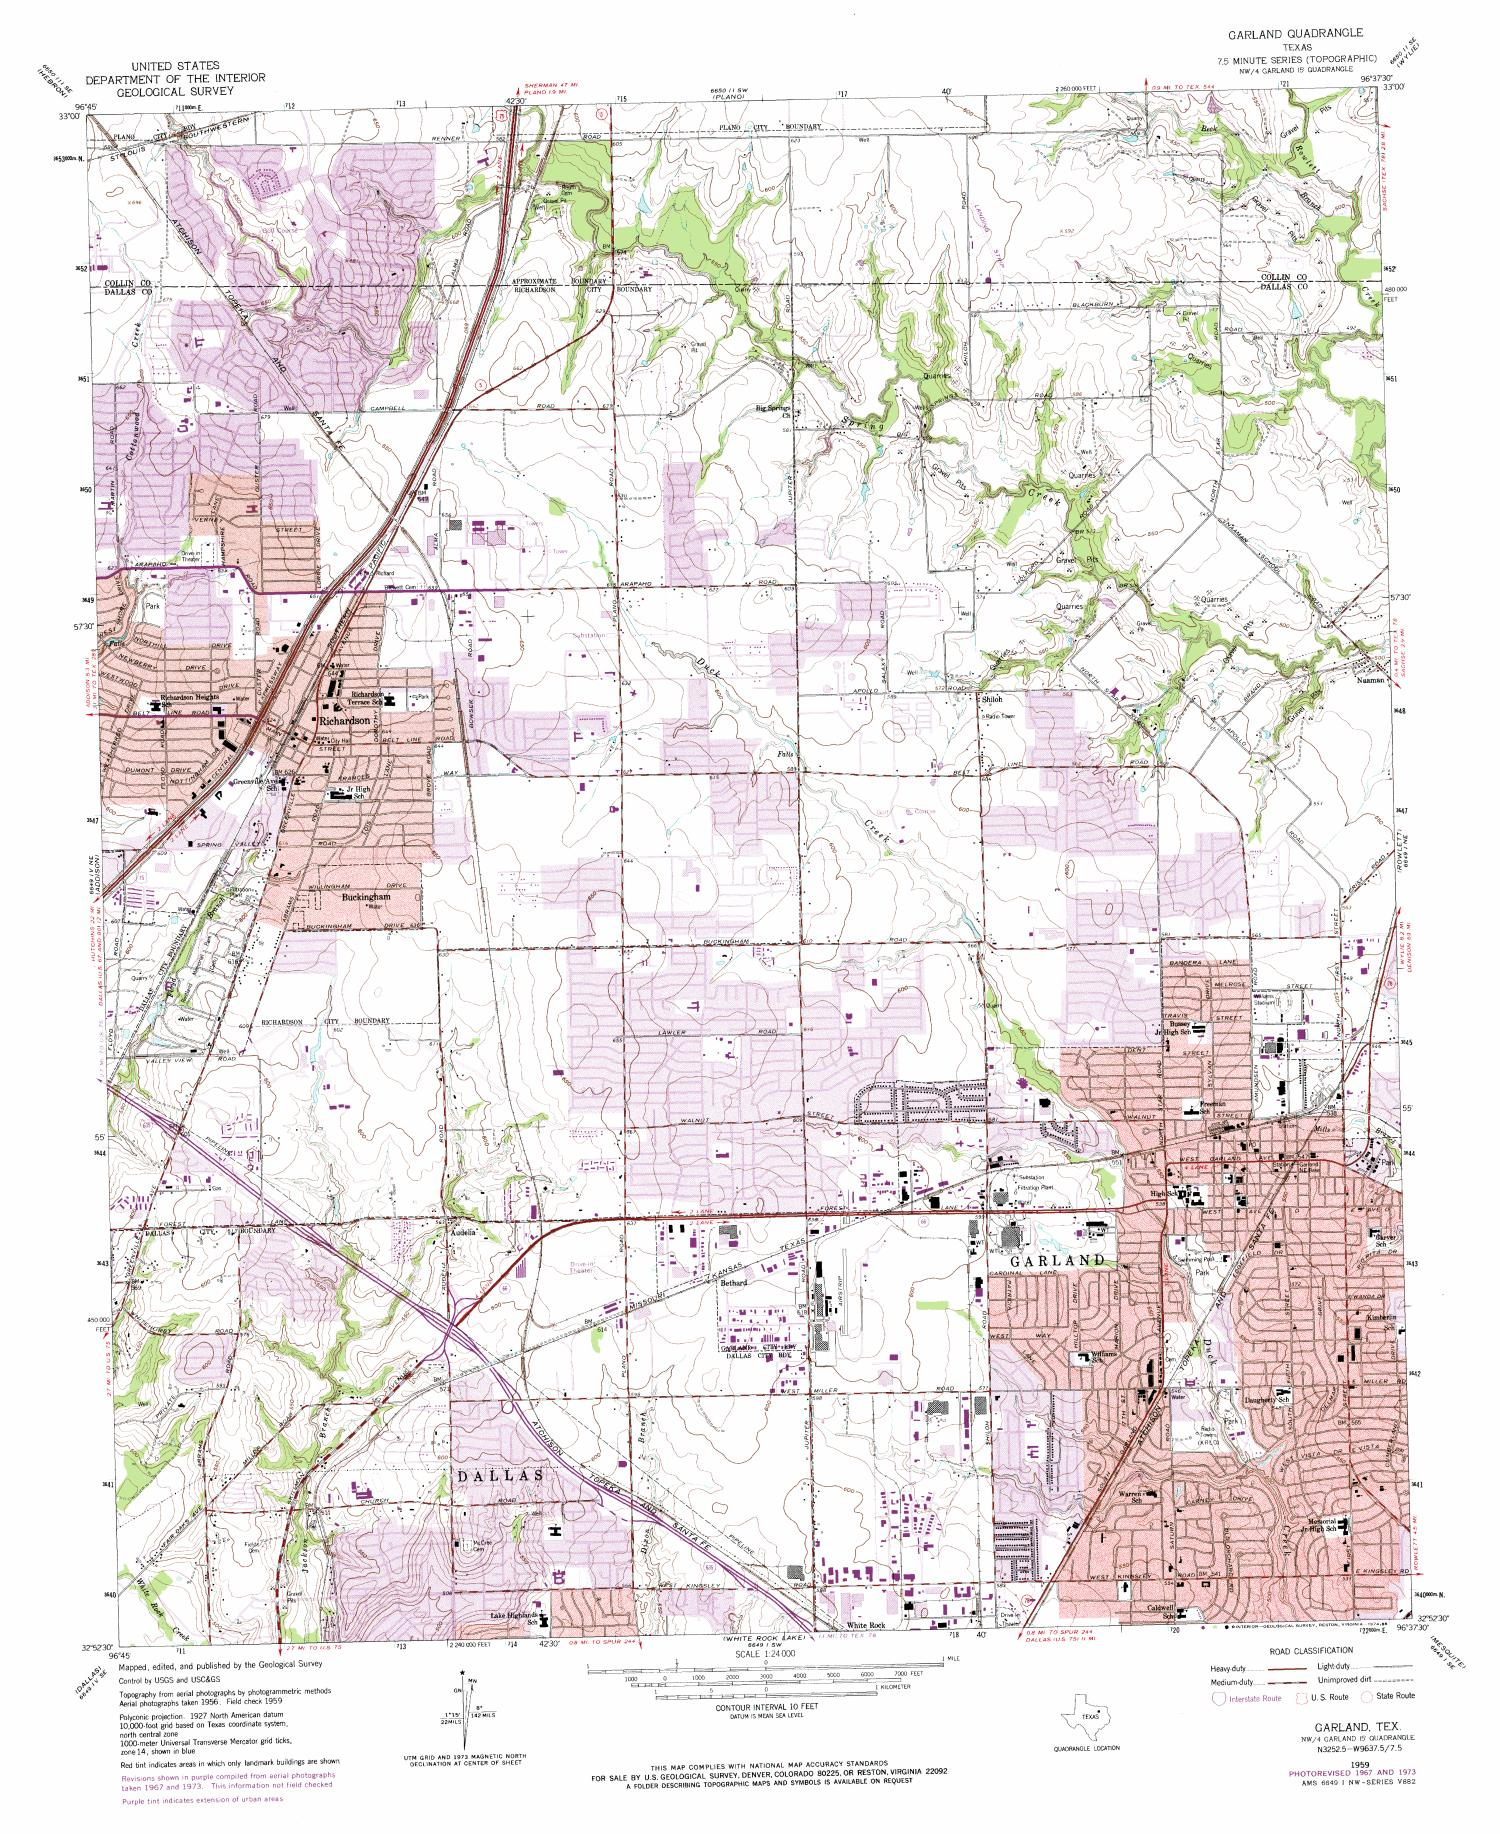 Garland Quadrangle, Topographic map of a portion of Texas from the United States Geological Survey (USGS) project. The map includes towns, historic or notable sites, bodies of water, and other geologic features. Scale 1:24,000,